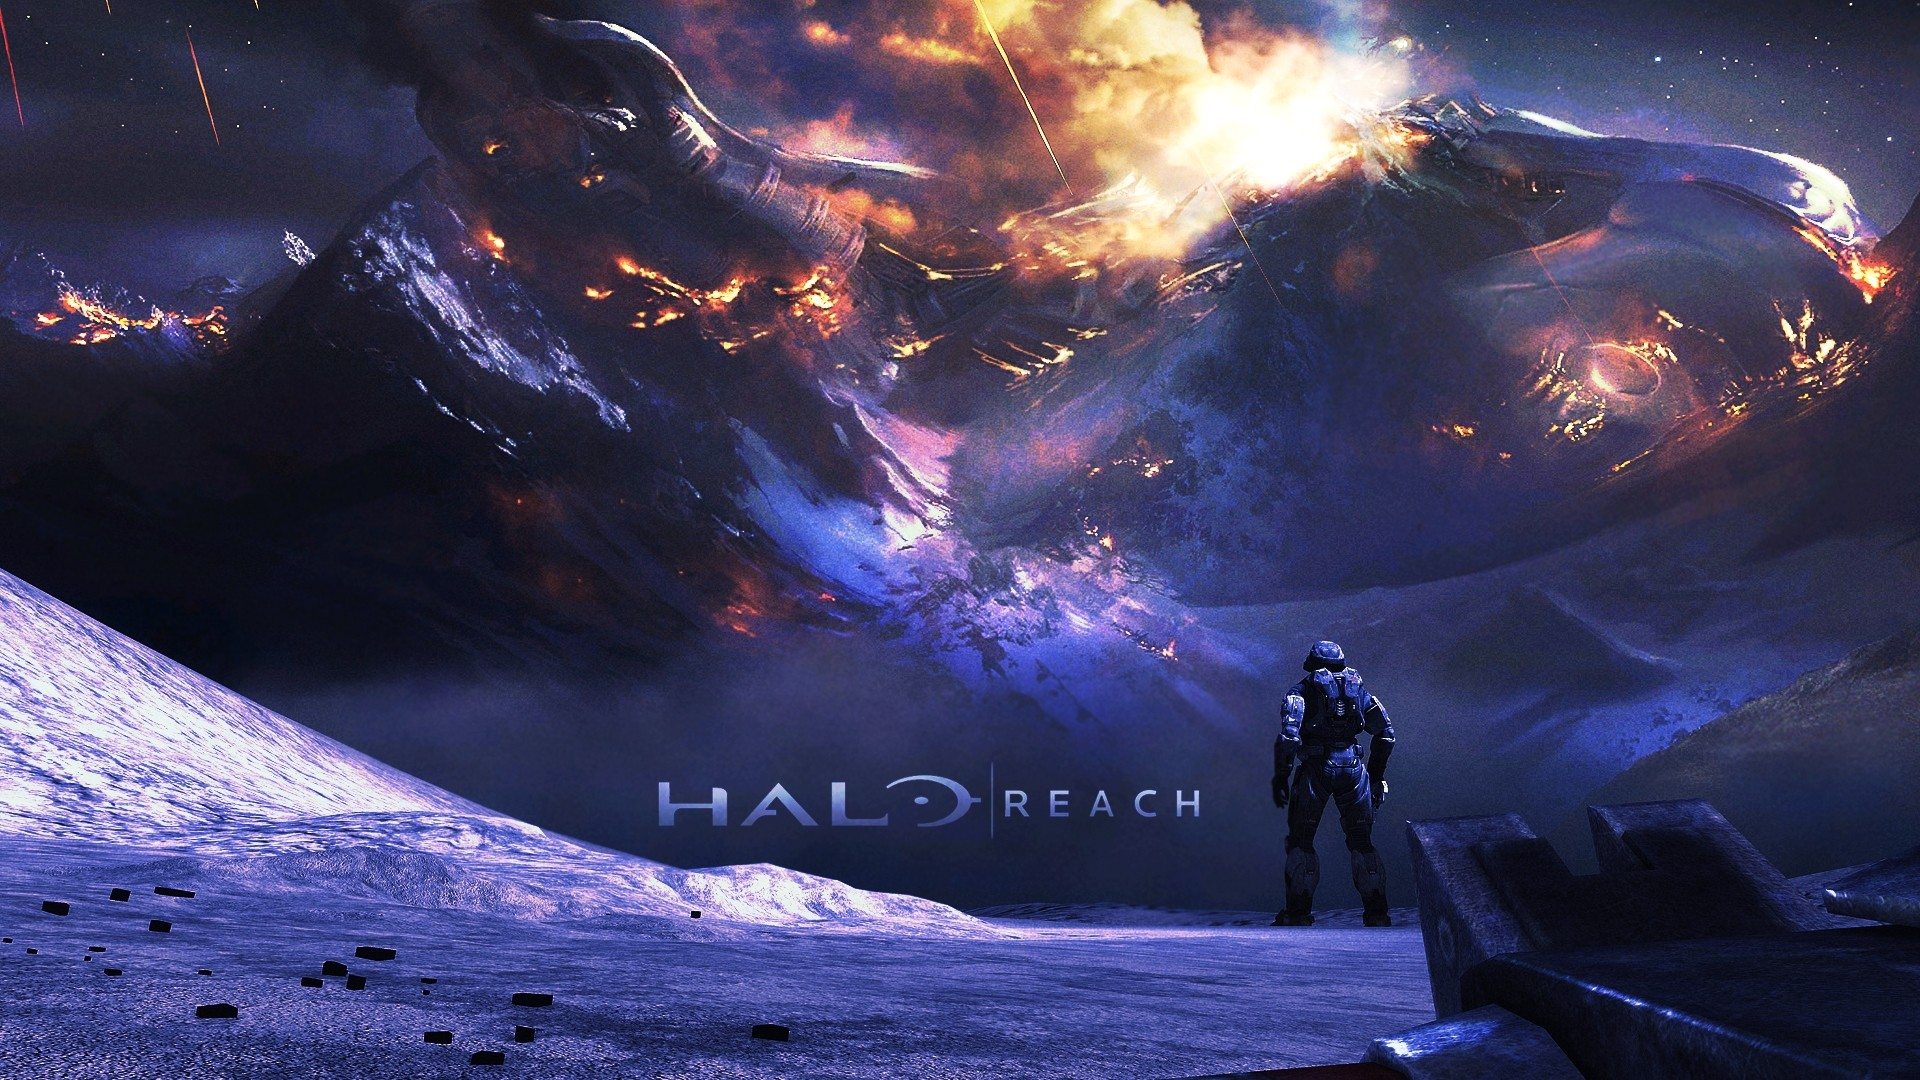 Halo Reach Free Wallpaper and Background